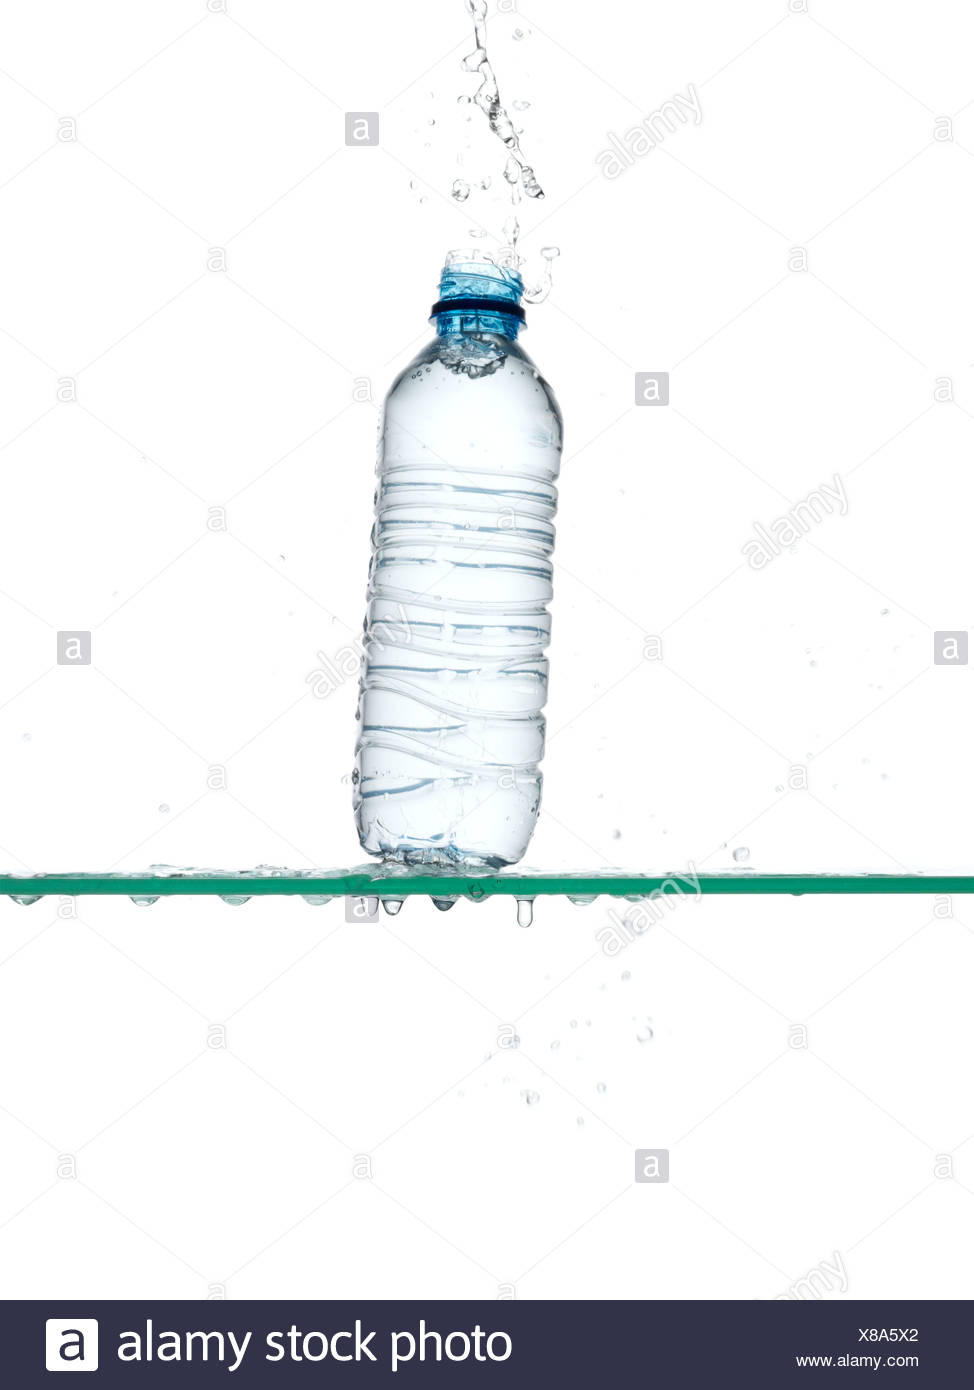 Bottle of water being dropped - Stock Image